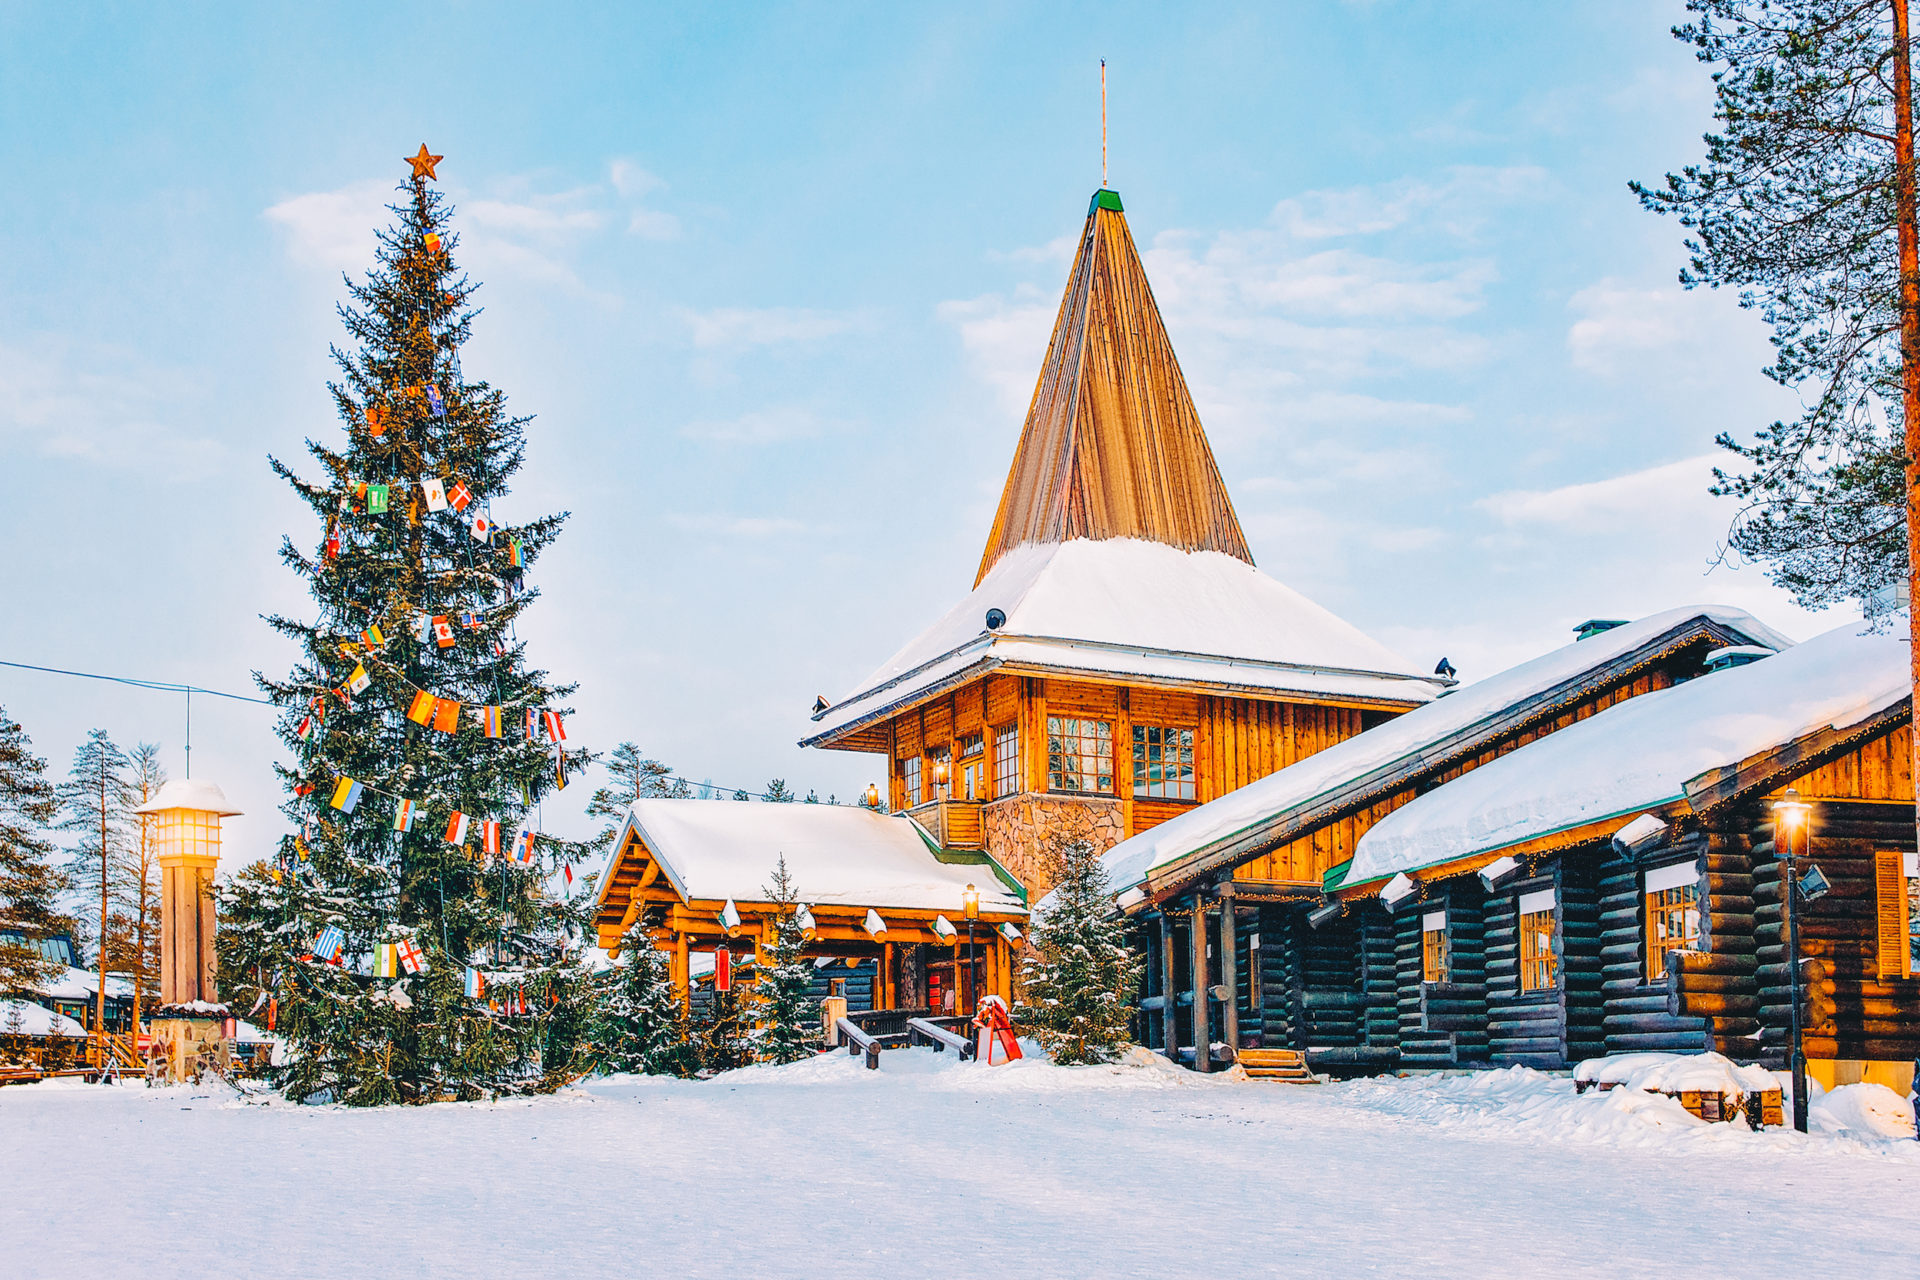 Santa Claus Village in Finnland